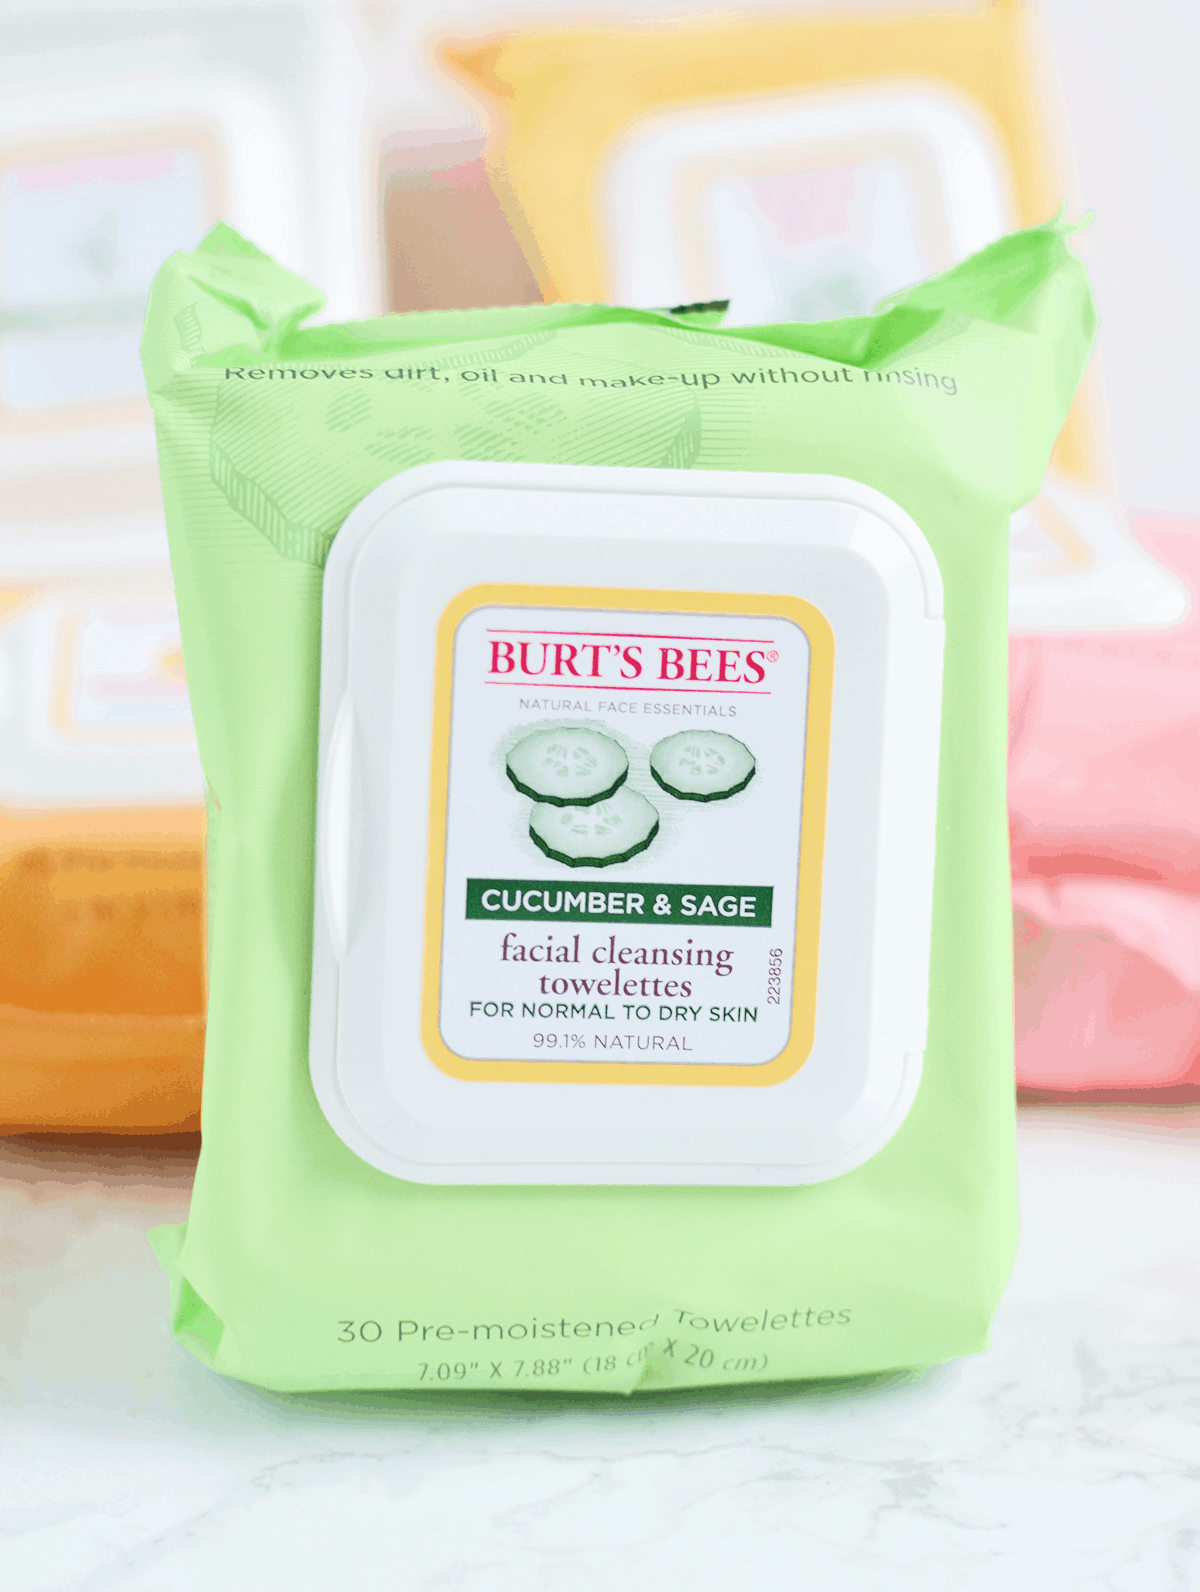 Burt's Bees Facial Wipes in Cucumber & Sage are perfect for normal to dry skin types! #NaturesSolutions AD | oliveandivyblog.com